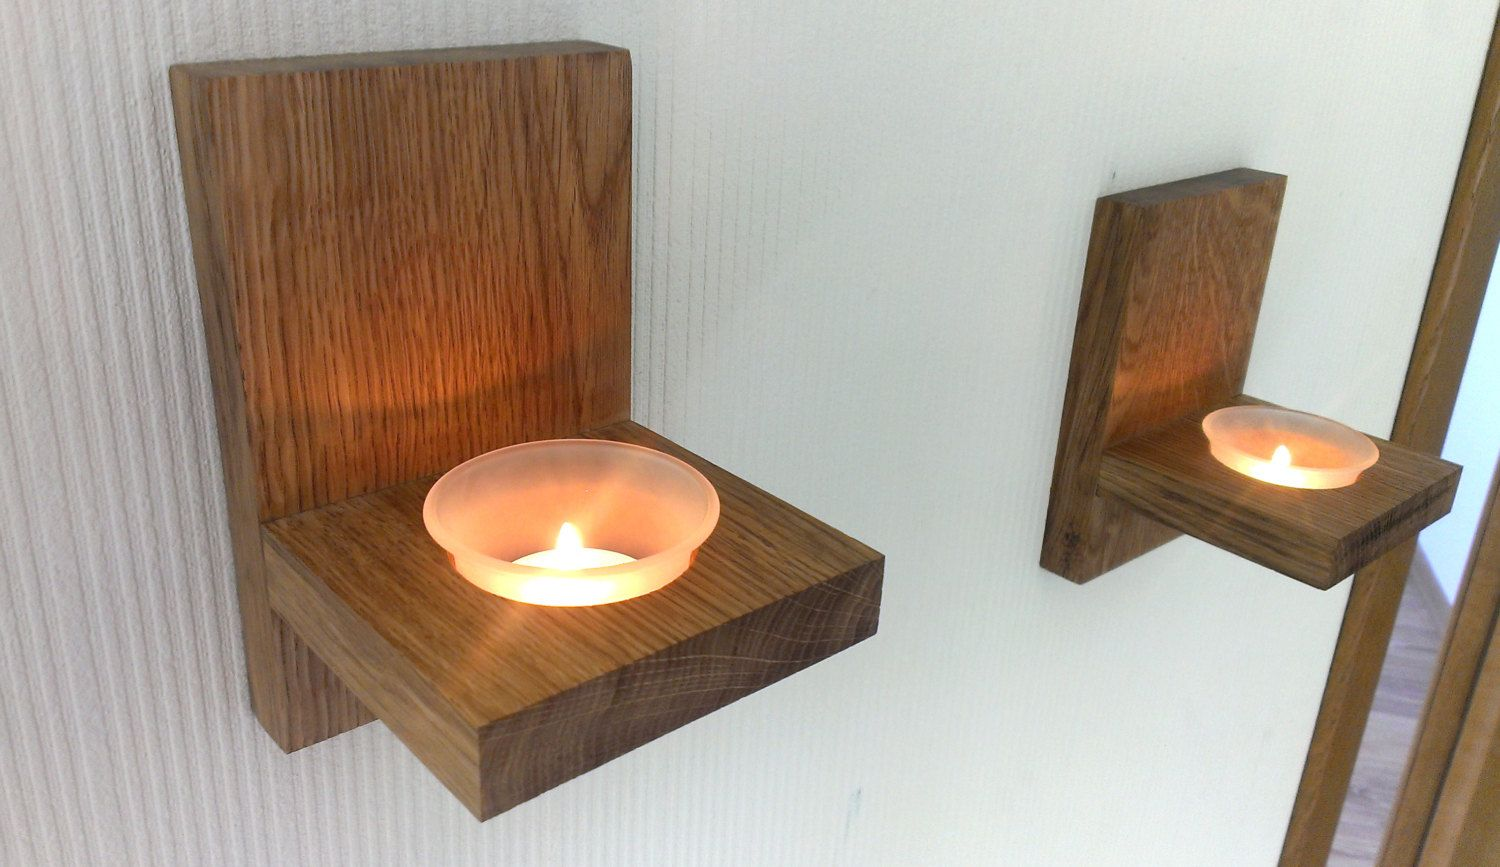 Wall Mounted Candle Lamps : Modern Wall Mount Tea Light Candle Holder, Oak Candle Holder, Rustic Wood Candle Holders ...